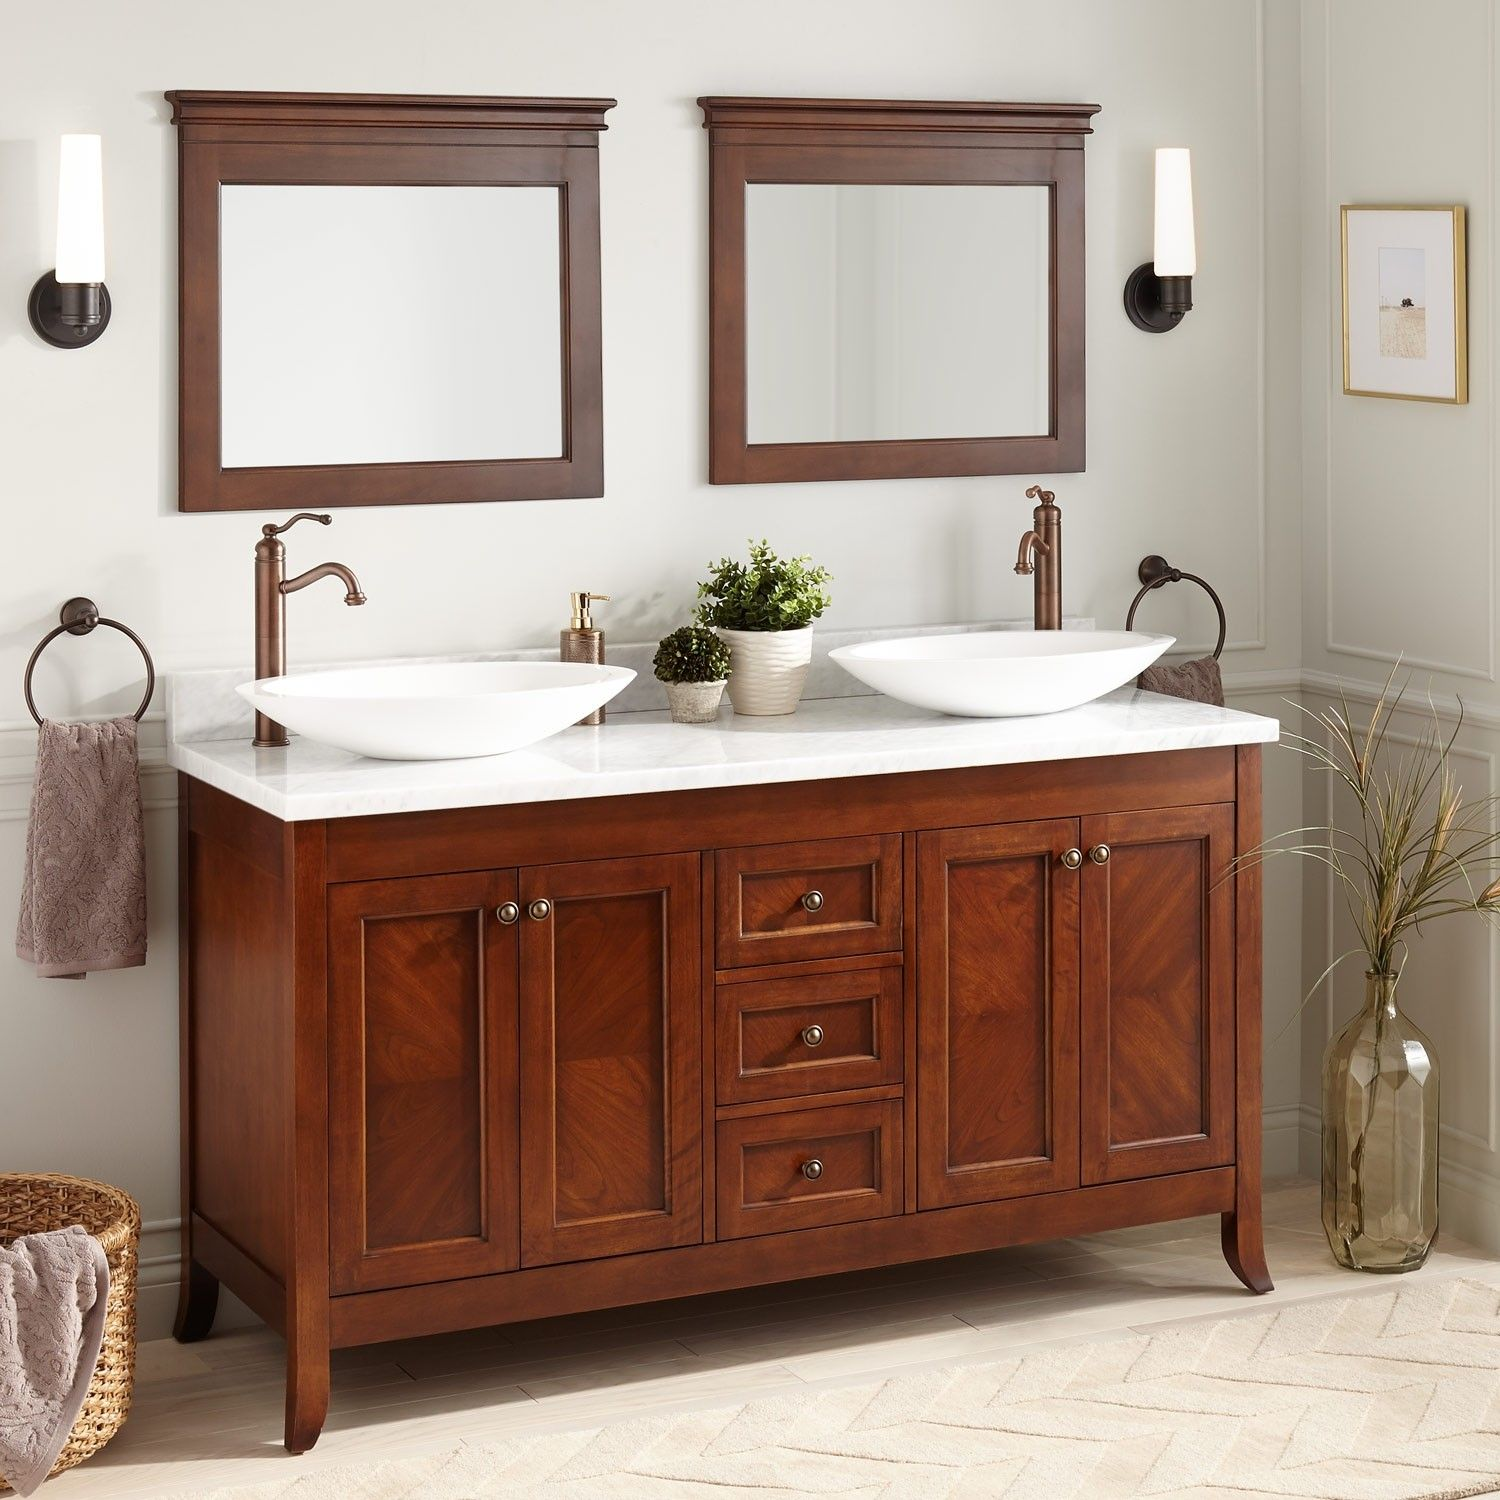 60 Mayfield Double Vessel Sink Vanity Medium Cherry Bathroom